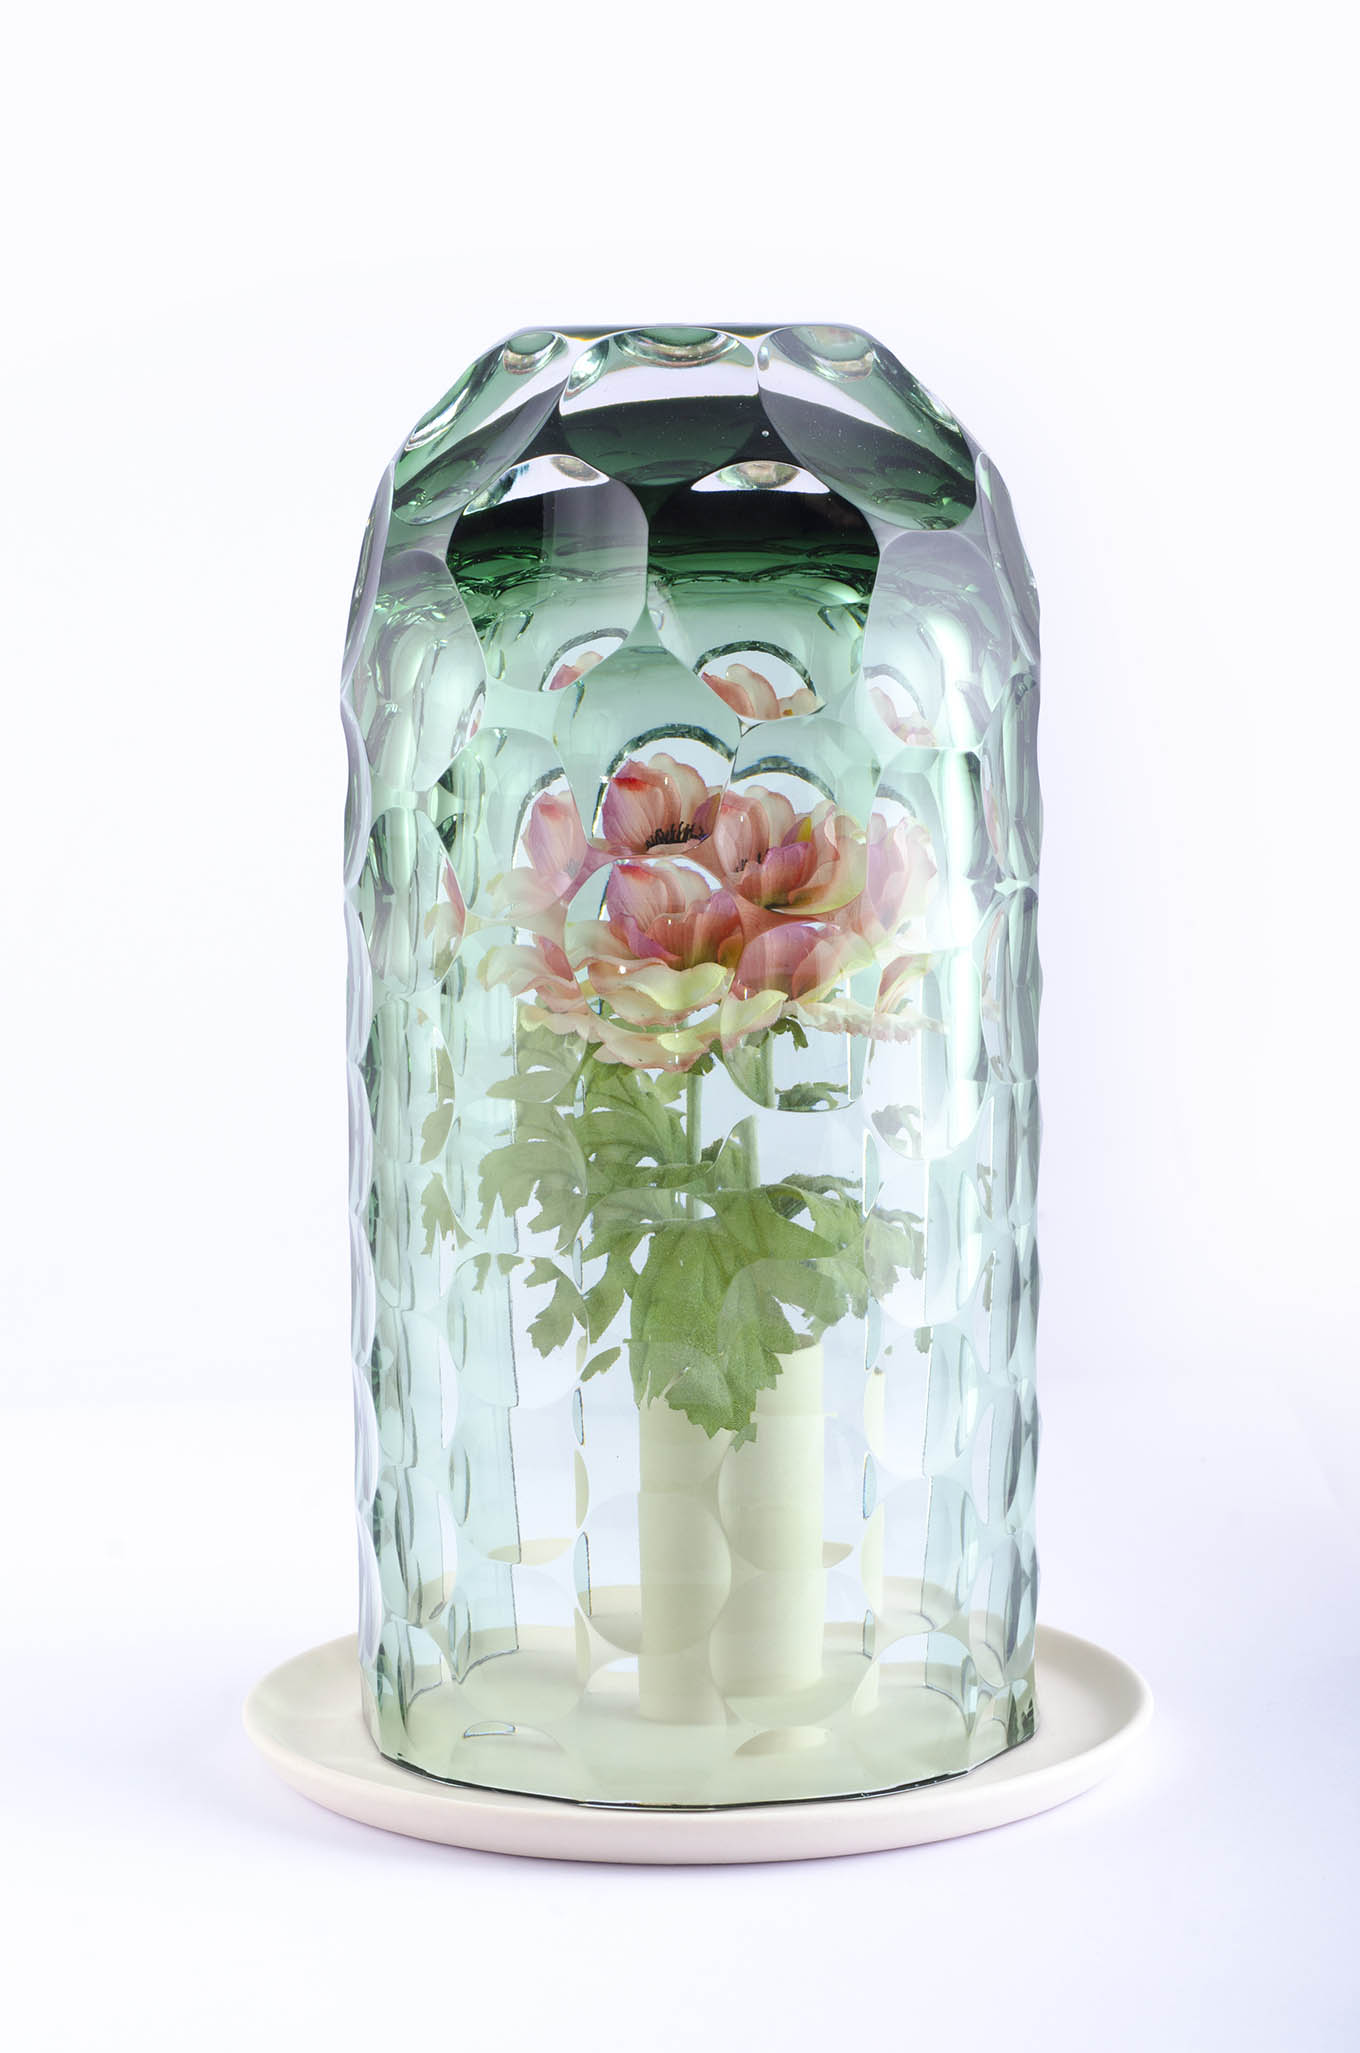 OP-Vase  by Bilge Nur Saltik, creates a kaleidoscopic effect with its unique technique of cutting glass, a timeless material.